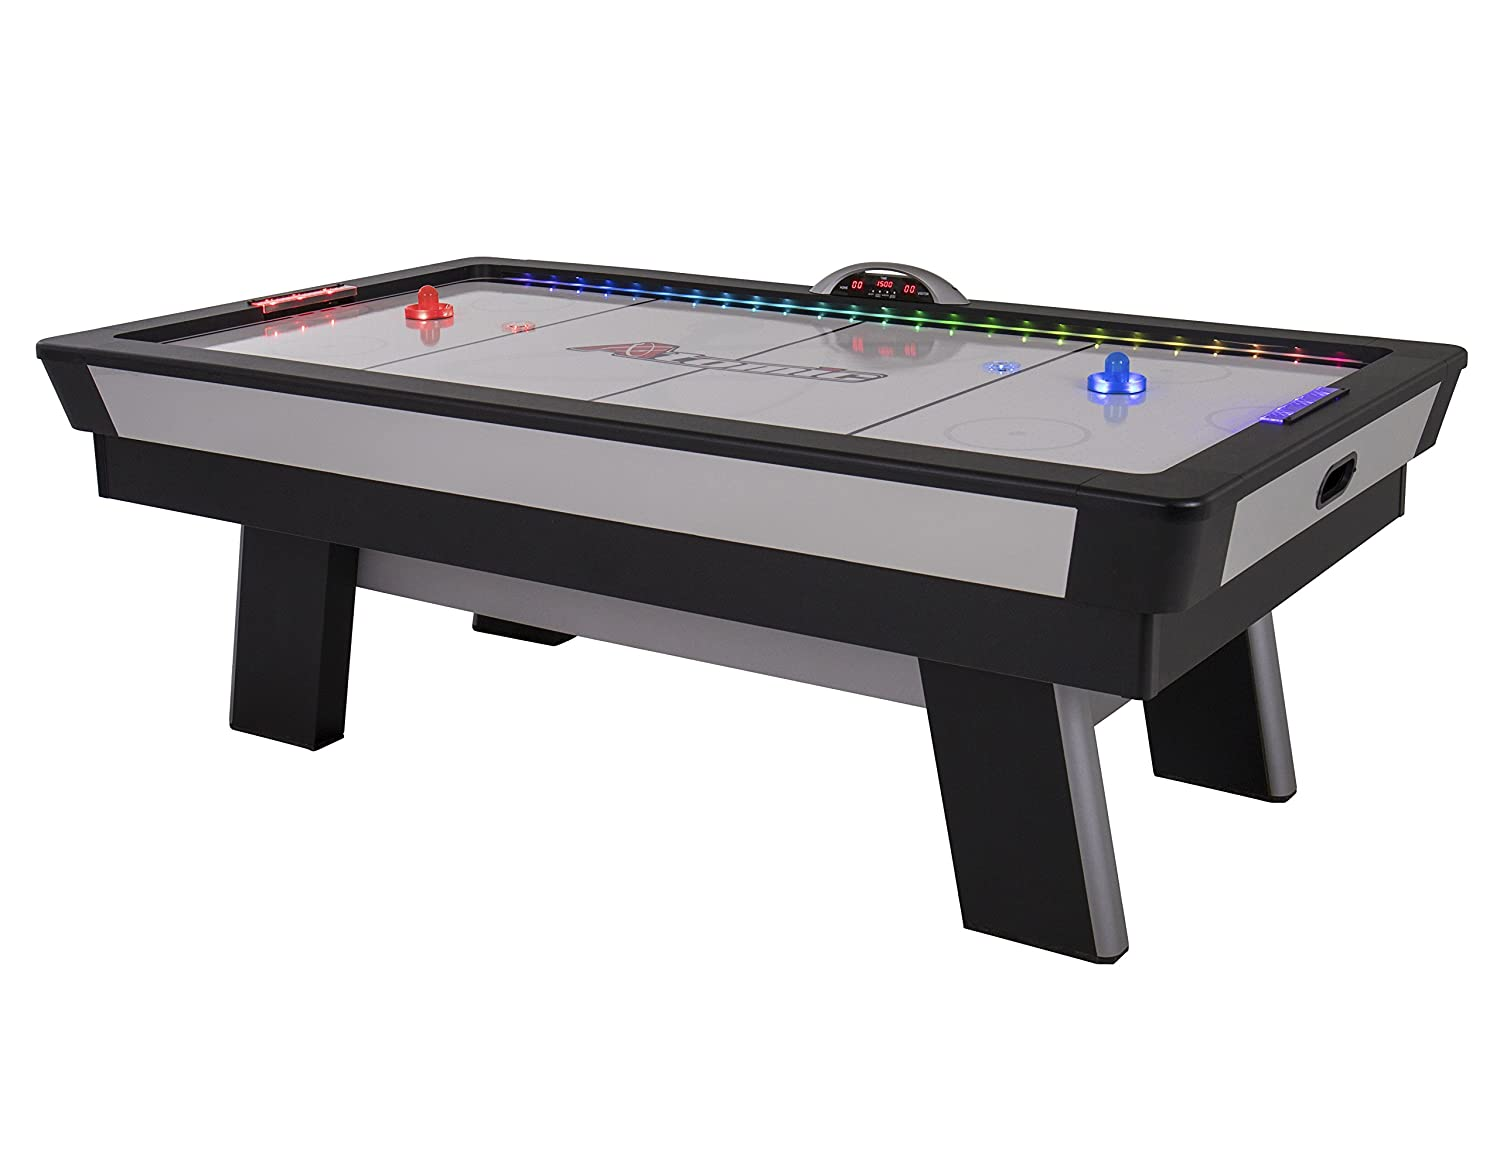 Atomic Top Shelf 7.5' Air Hockey Table Black Friday Deals